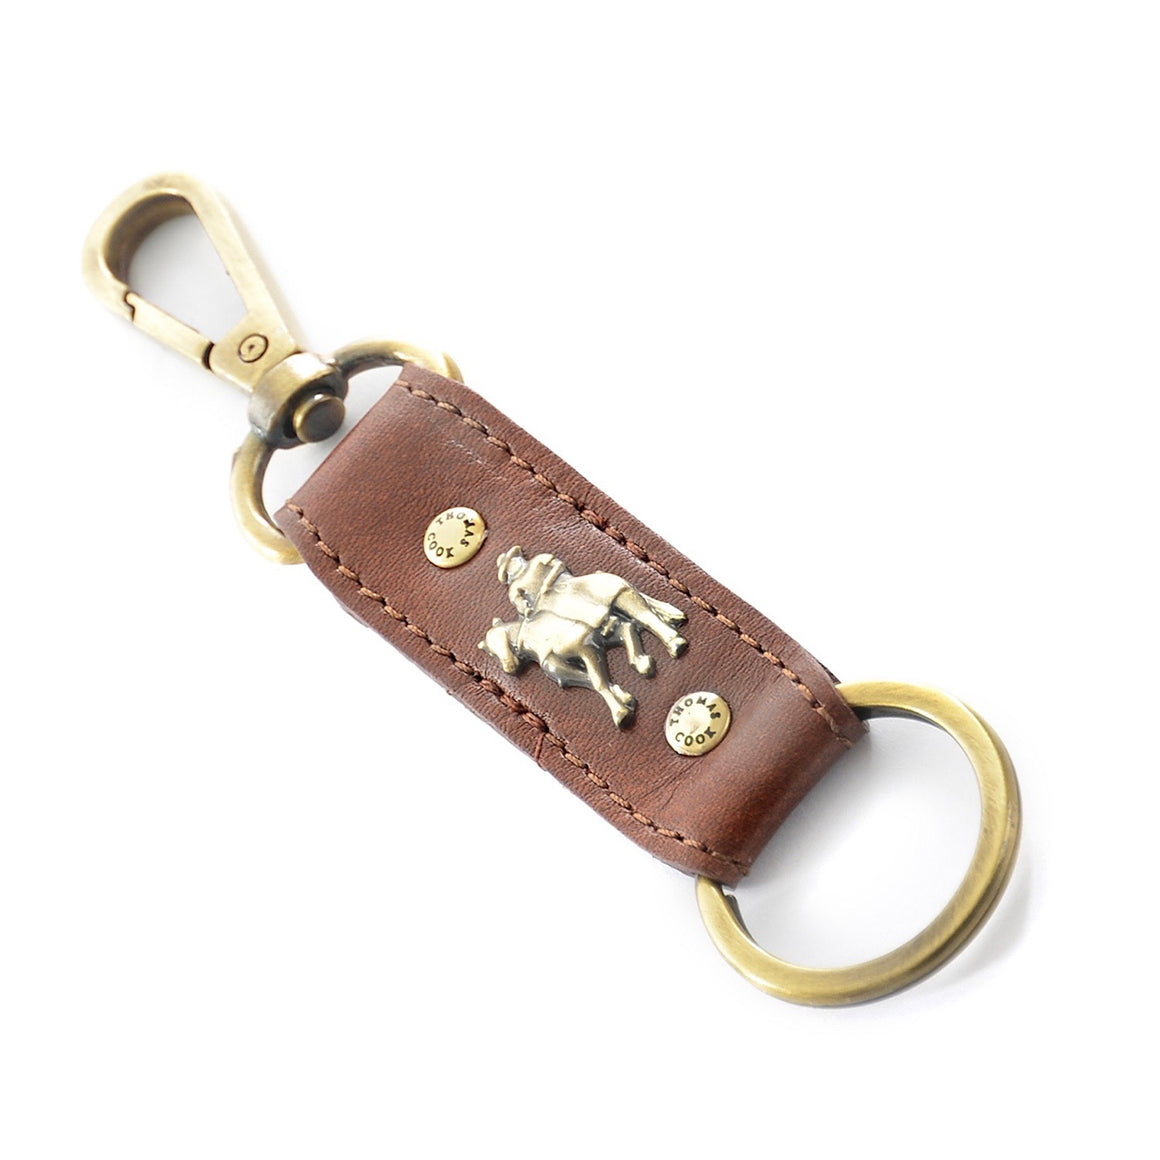 Thomas Cootamundra Horseman Key Ring